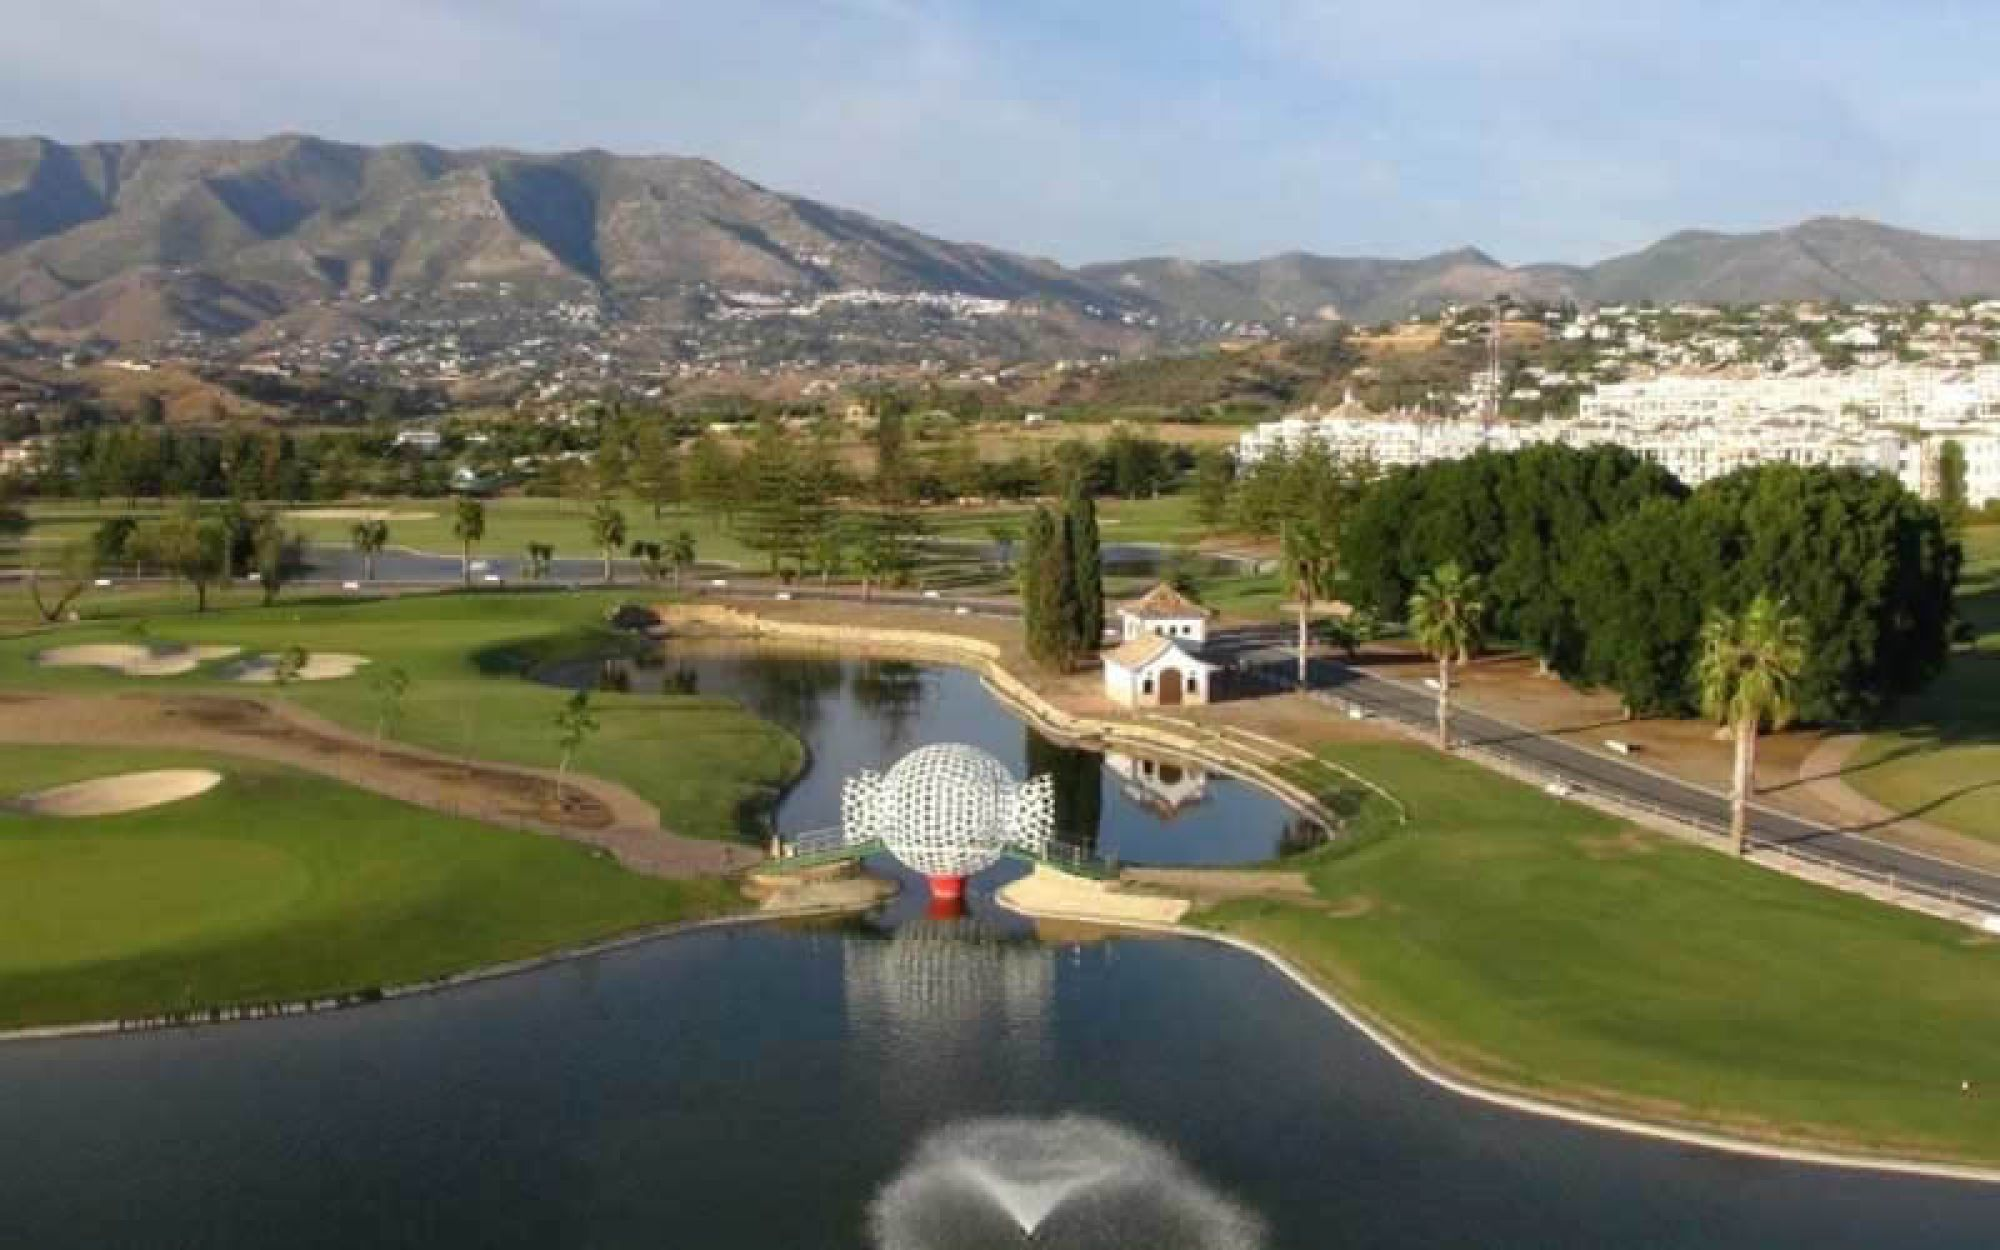 The Mijas Golf Club - Los Lagos's lovely golf course in incredible Costa Del Sol.